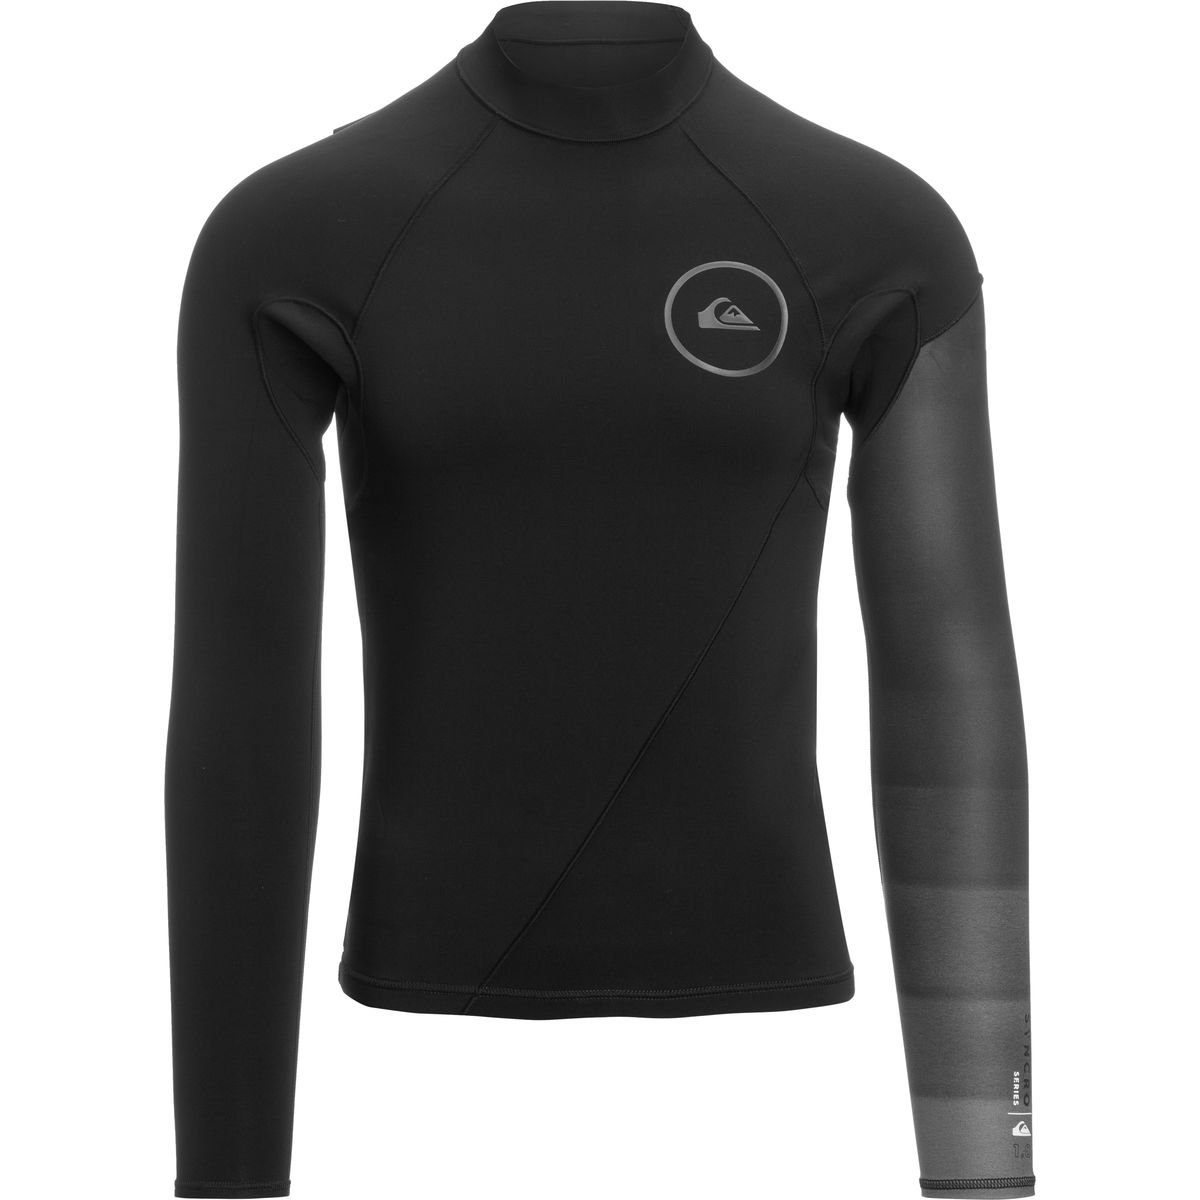 Quiksilver 1mm Syncro Series New Wave - Wetsuit Top Size XX-Large   B01N7STAAL